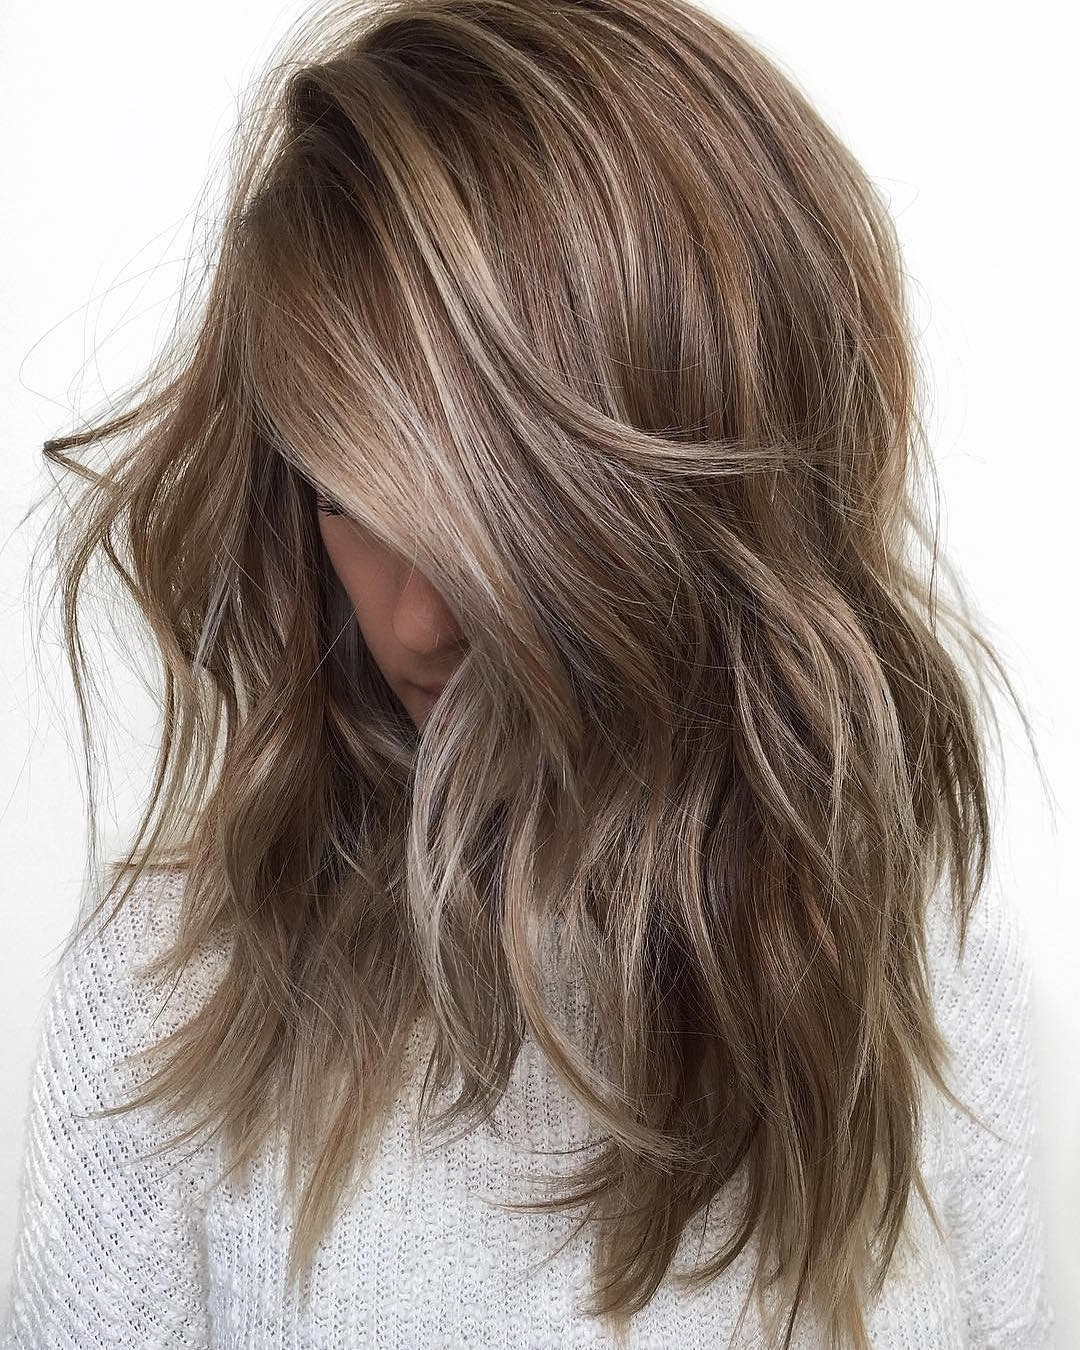 10 Balayage Ombre Hair Styles For Shoulder Length Hair, Women For Most Popular Medium Blonde Balayage Hairstyles (View 10 of 20)